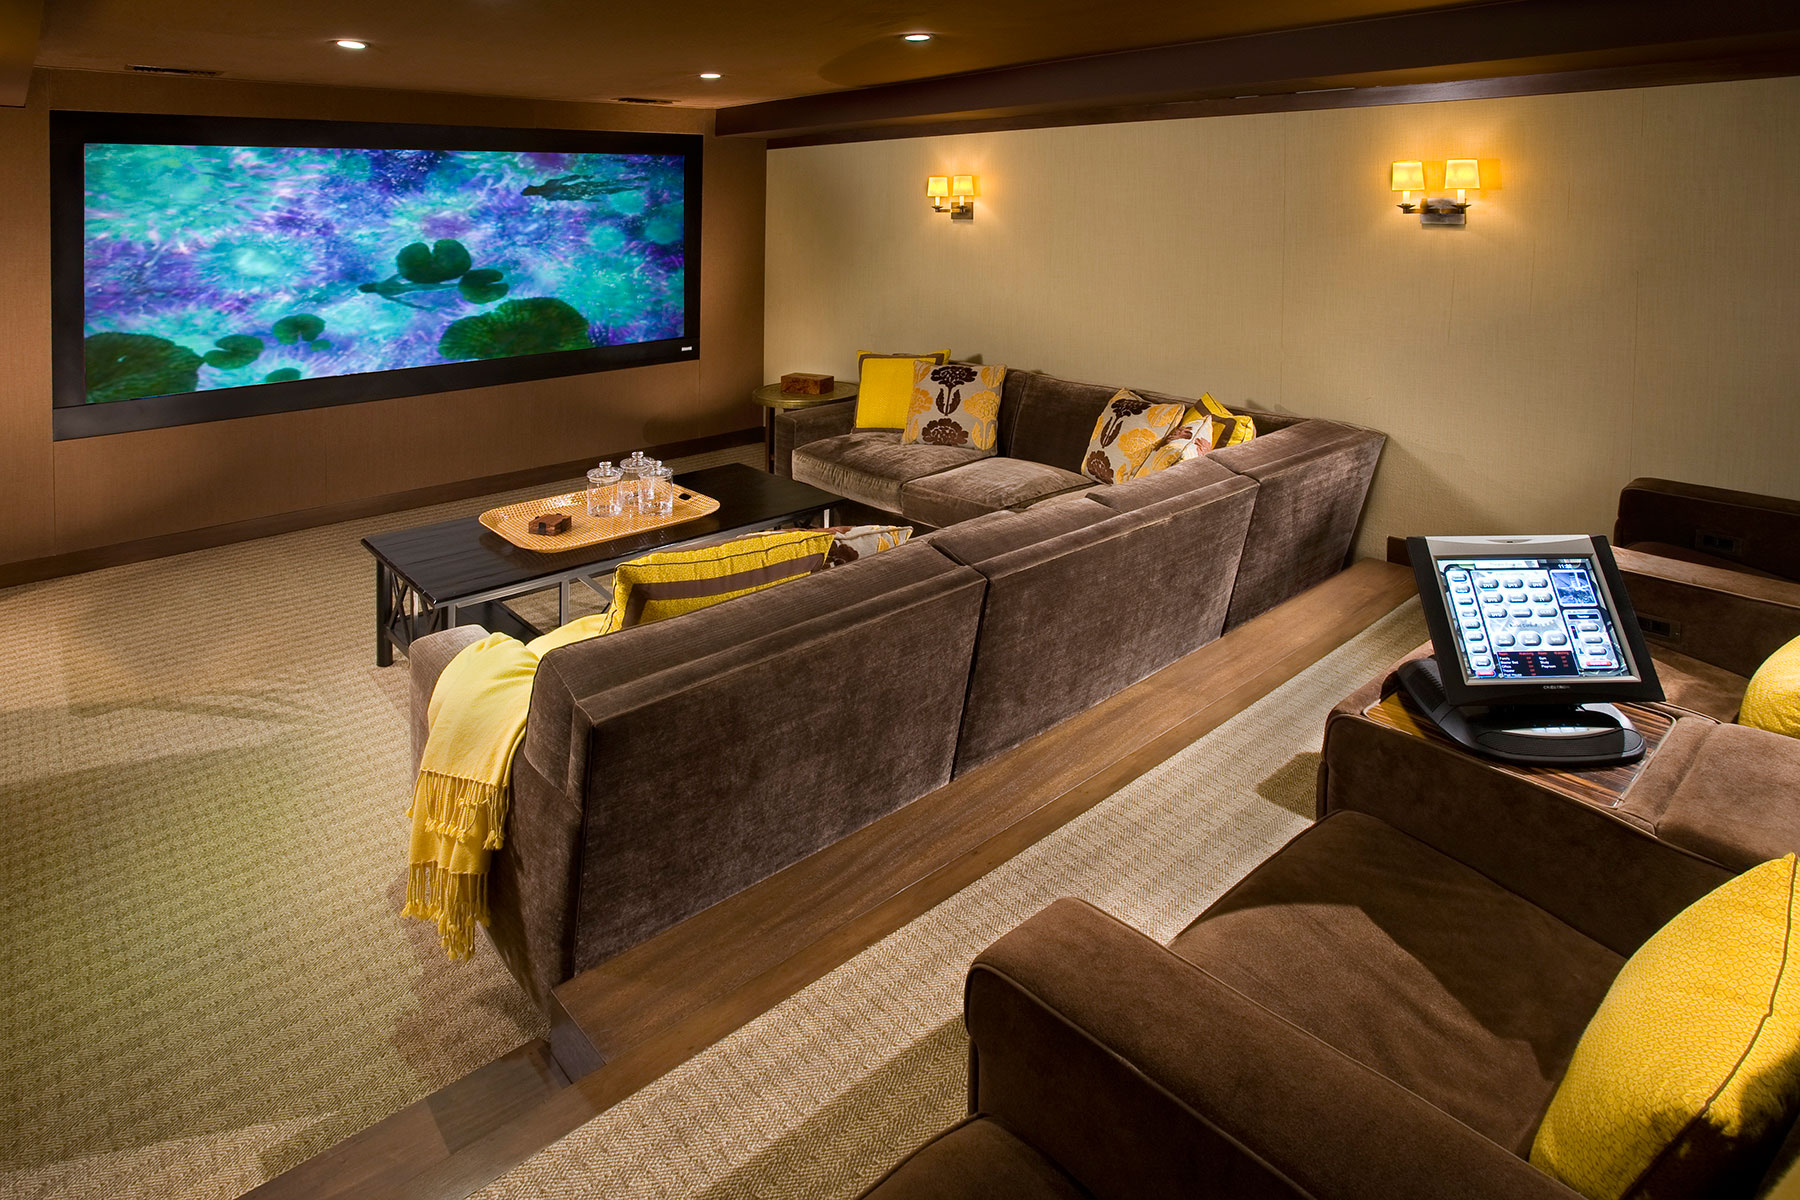 home theater signals audio video signals av is also your source for theater interiors and build outs from theater seating and risers to stages drapes and lighting we work with your